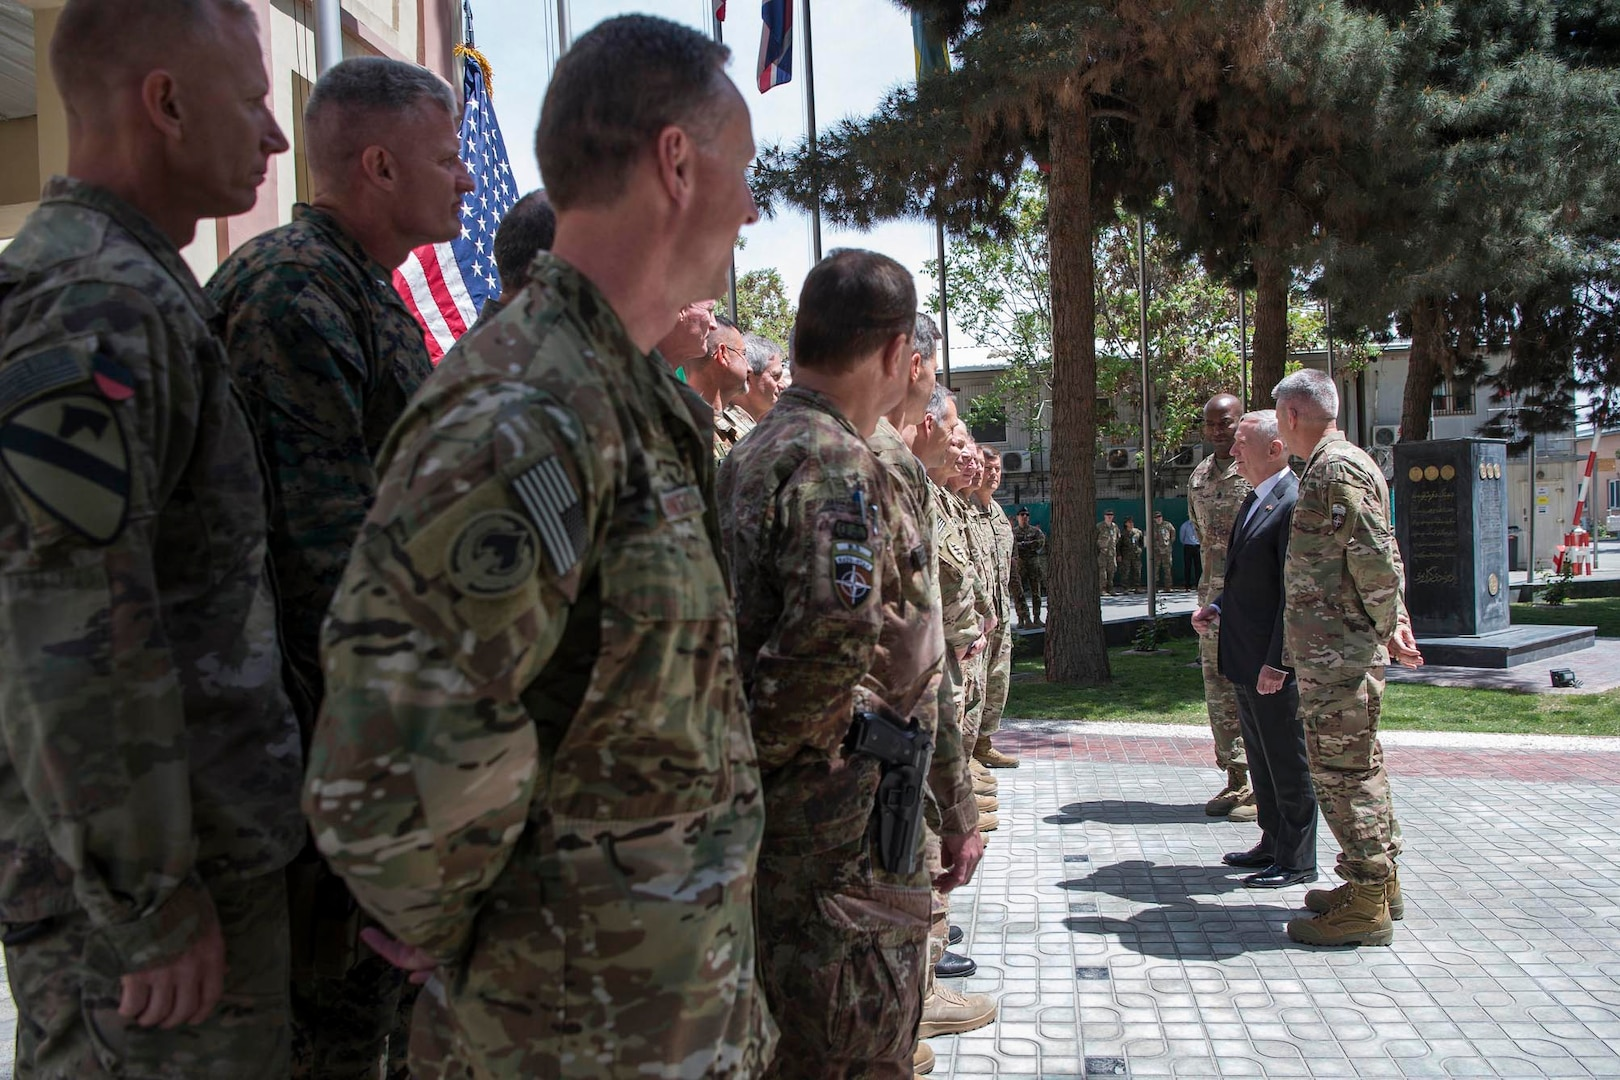 Defense Secretary Jim Mattis and Army Gen. John Nicholson, Resolute Support commander, meet with some of the mission's senior leaders and commad staff at the Resolute Support Headquarters in Kabul, Afghanistan, April 24, 2017. DoD photo by Air Force Tech. Sgt. Brigitte N. Brantley